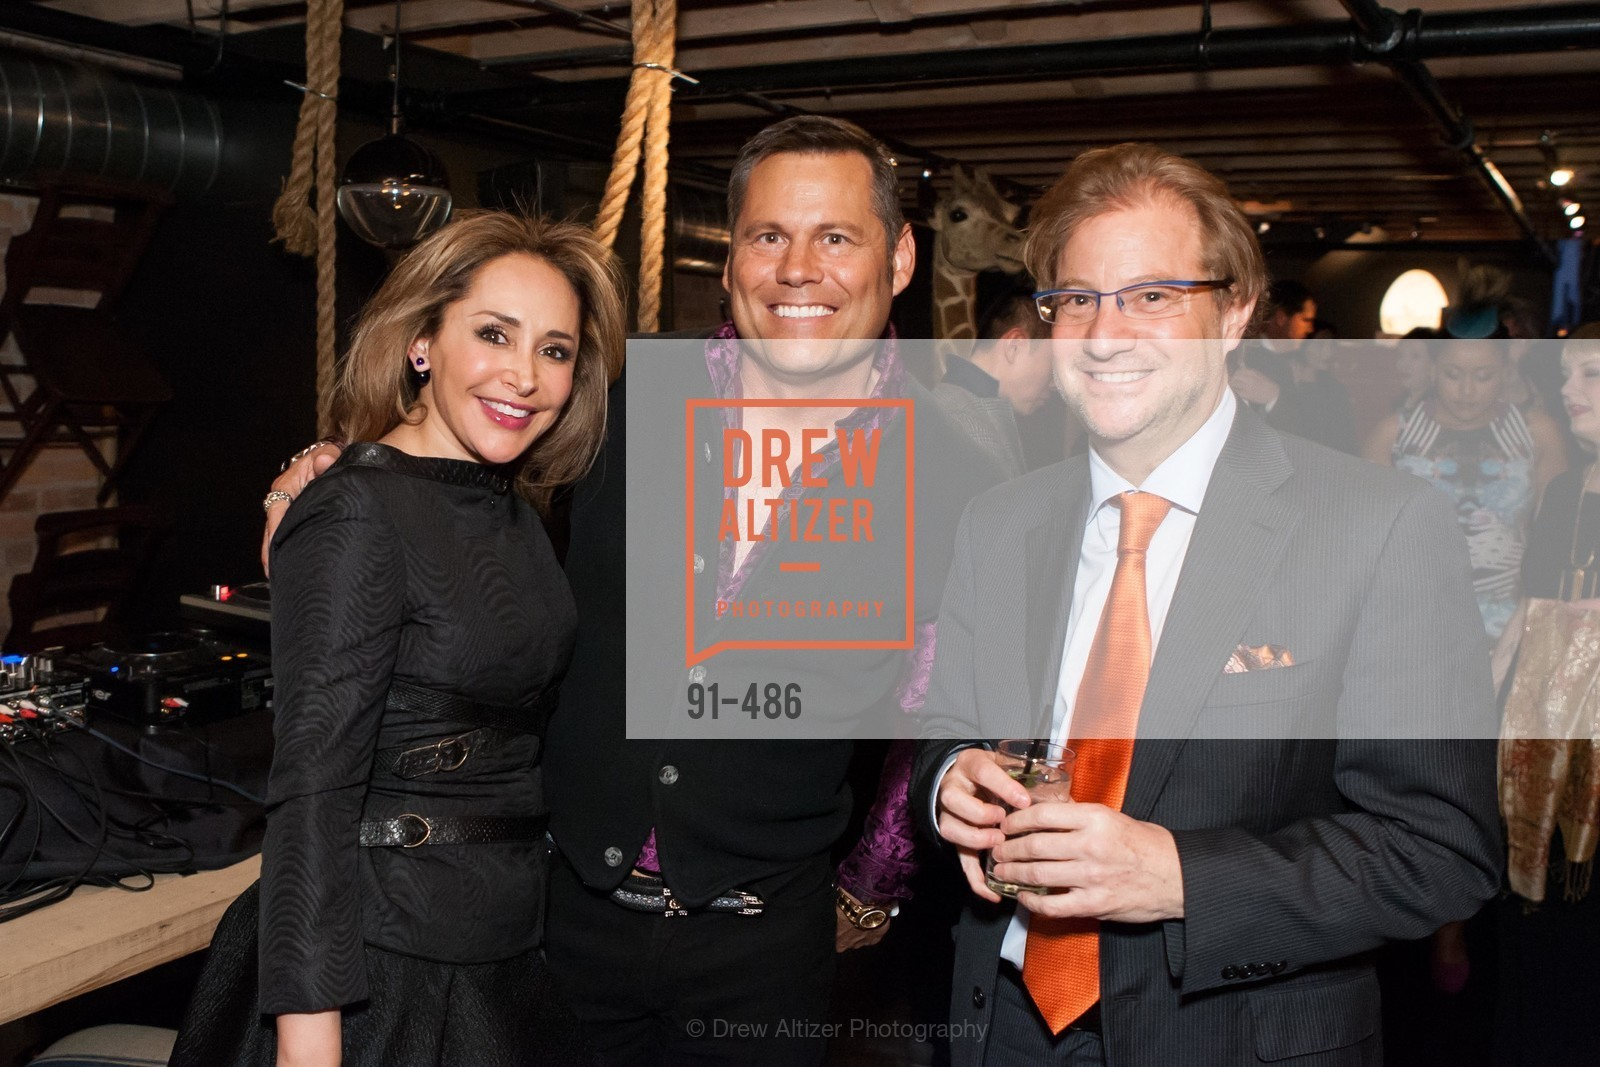 Brenda Zarate, Mark Calvano, Andrew Roemer, KEN FULK Presents All Fools Day, US. US, April 1st, 2014,Drew Altizer, Drew Altizer Photography, full-service agency, private events, San Francisco photographer, photographer california